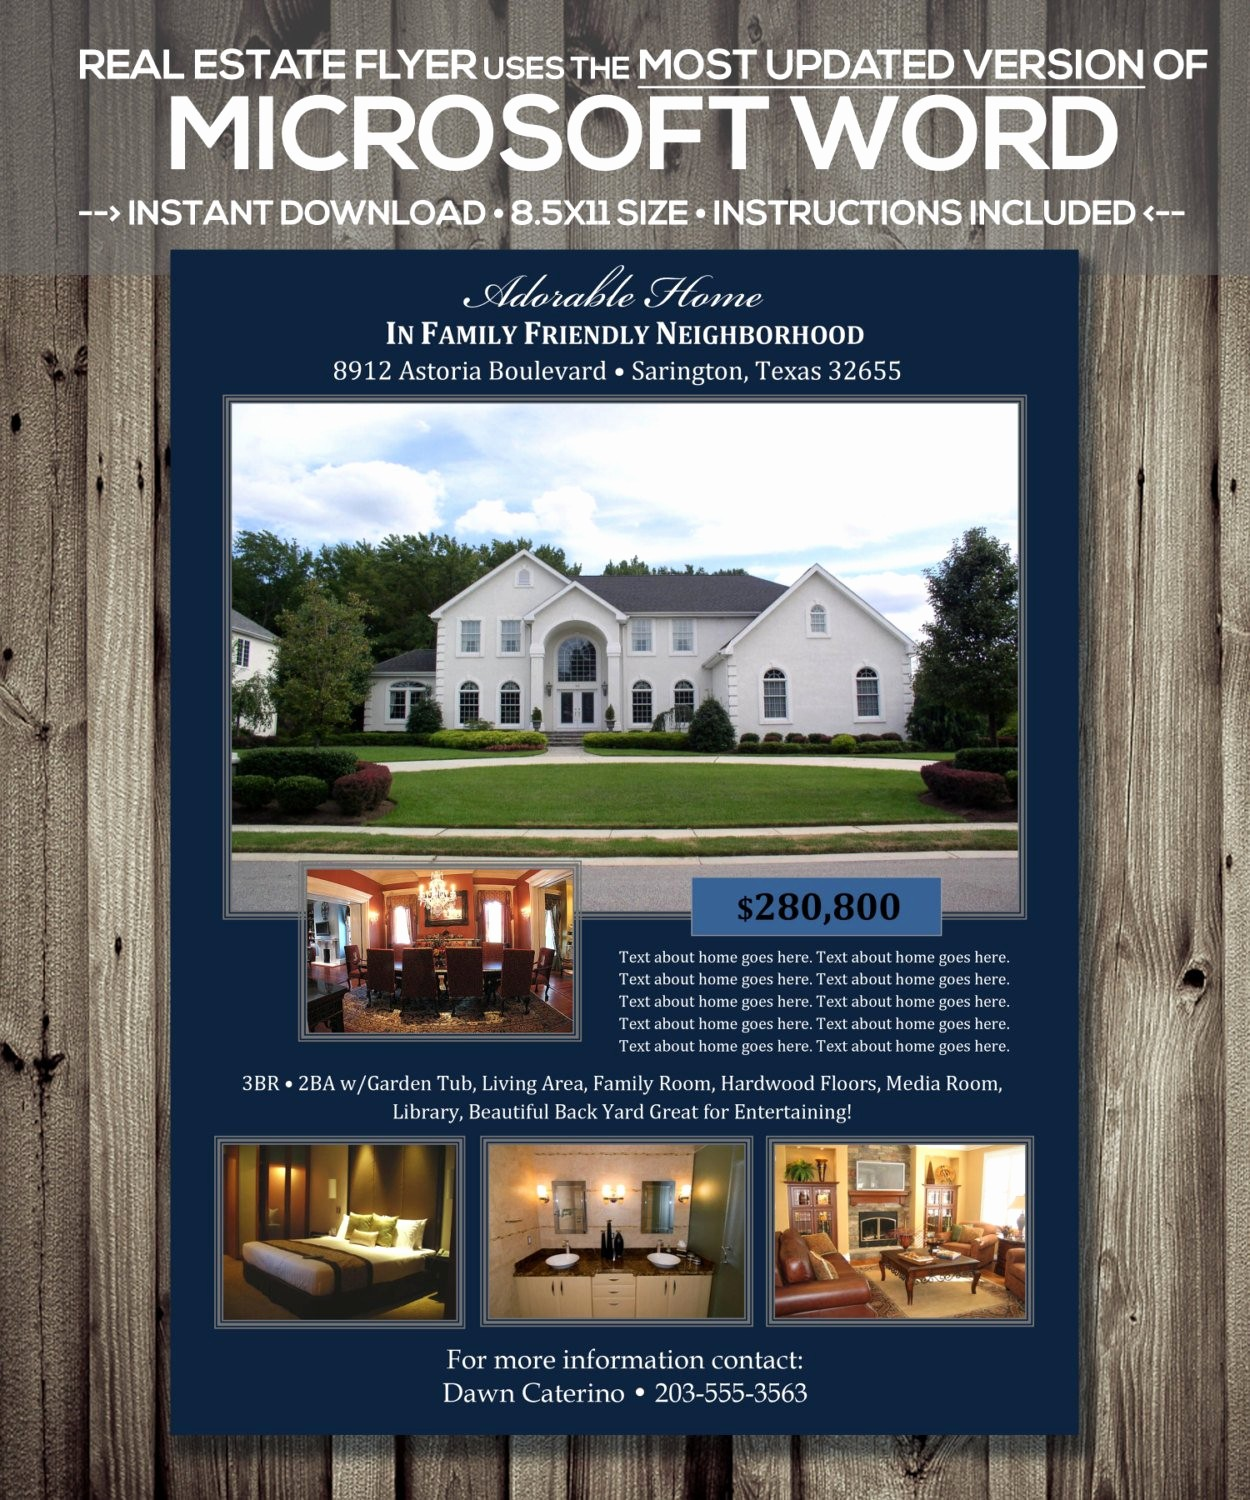 Ms Word Flyer Template Free Beautiful Real Estate Flyer Template Microsoft Word Cx Version